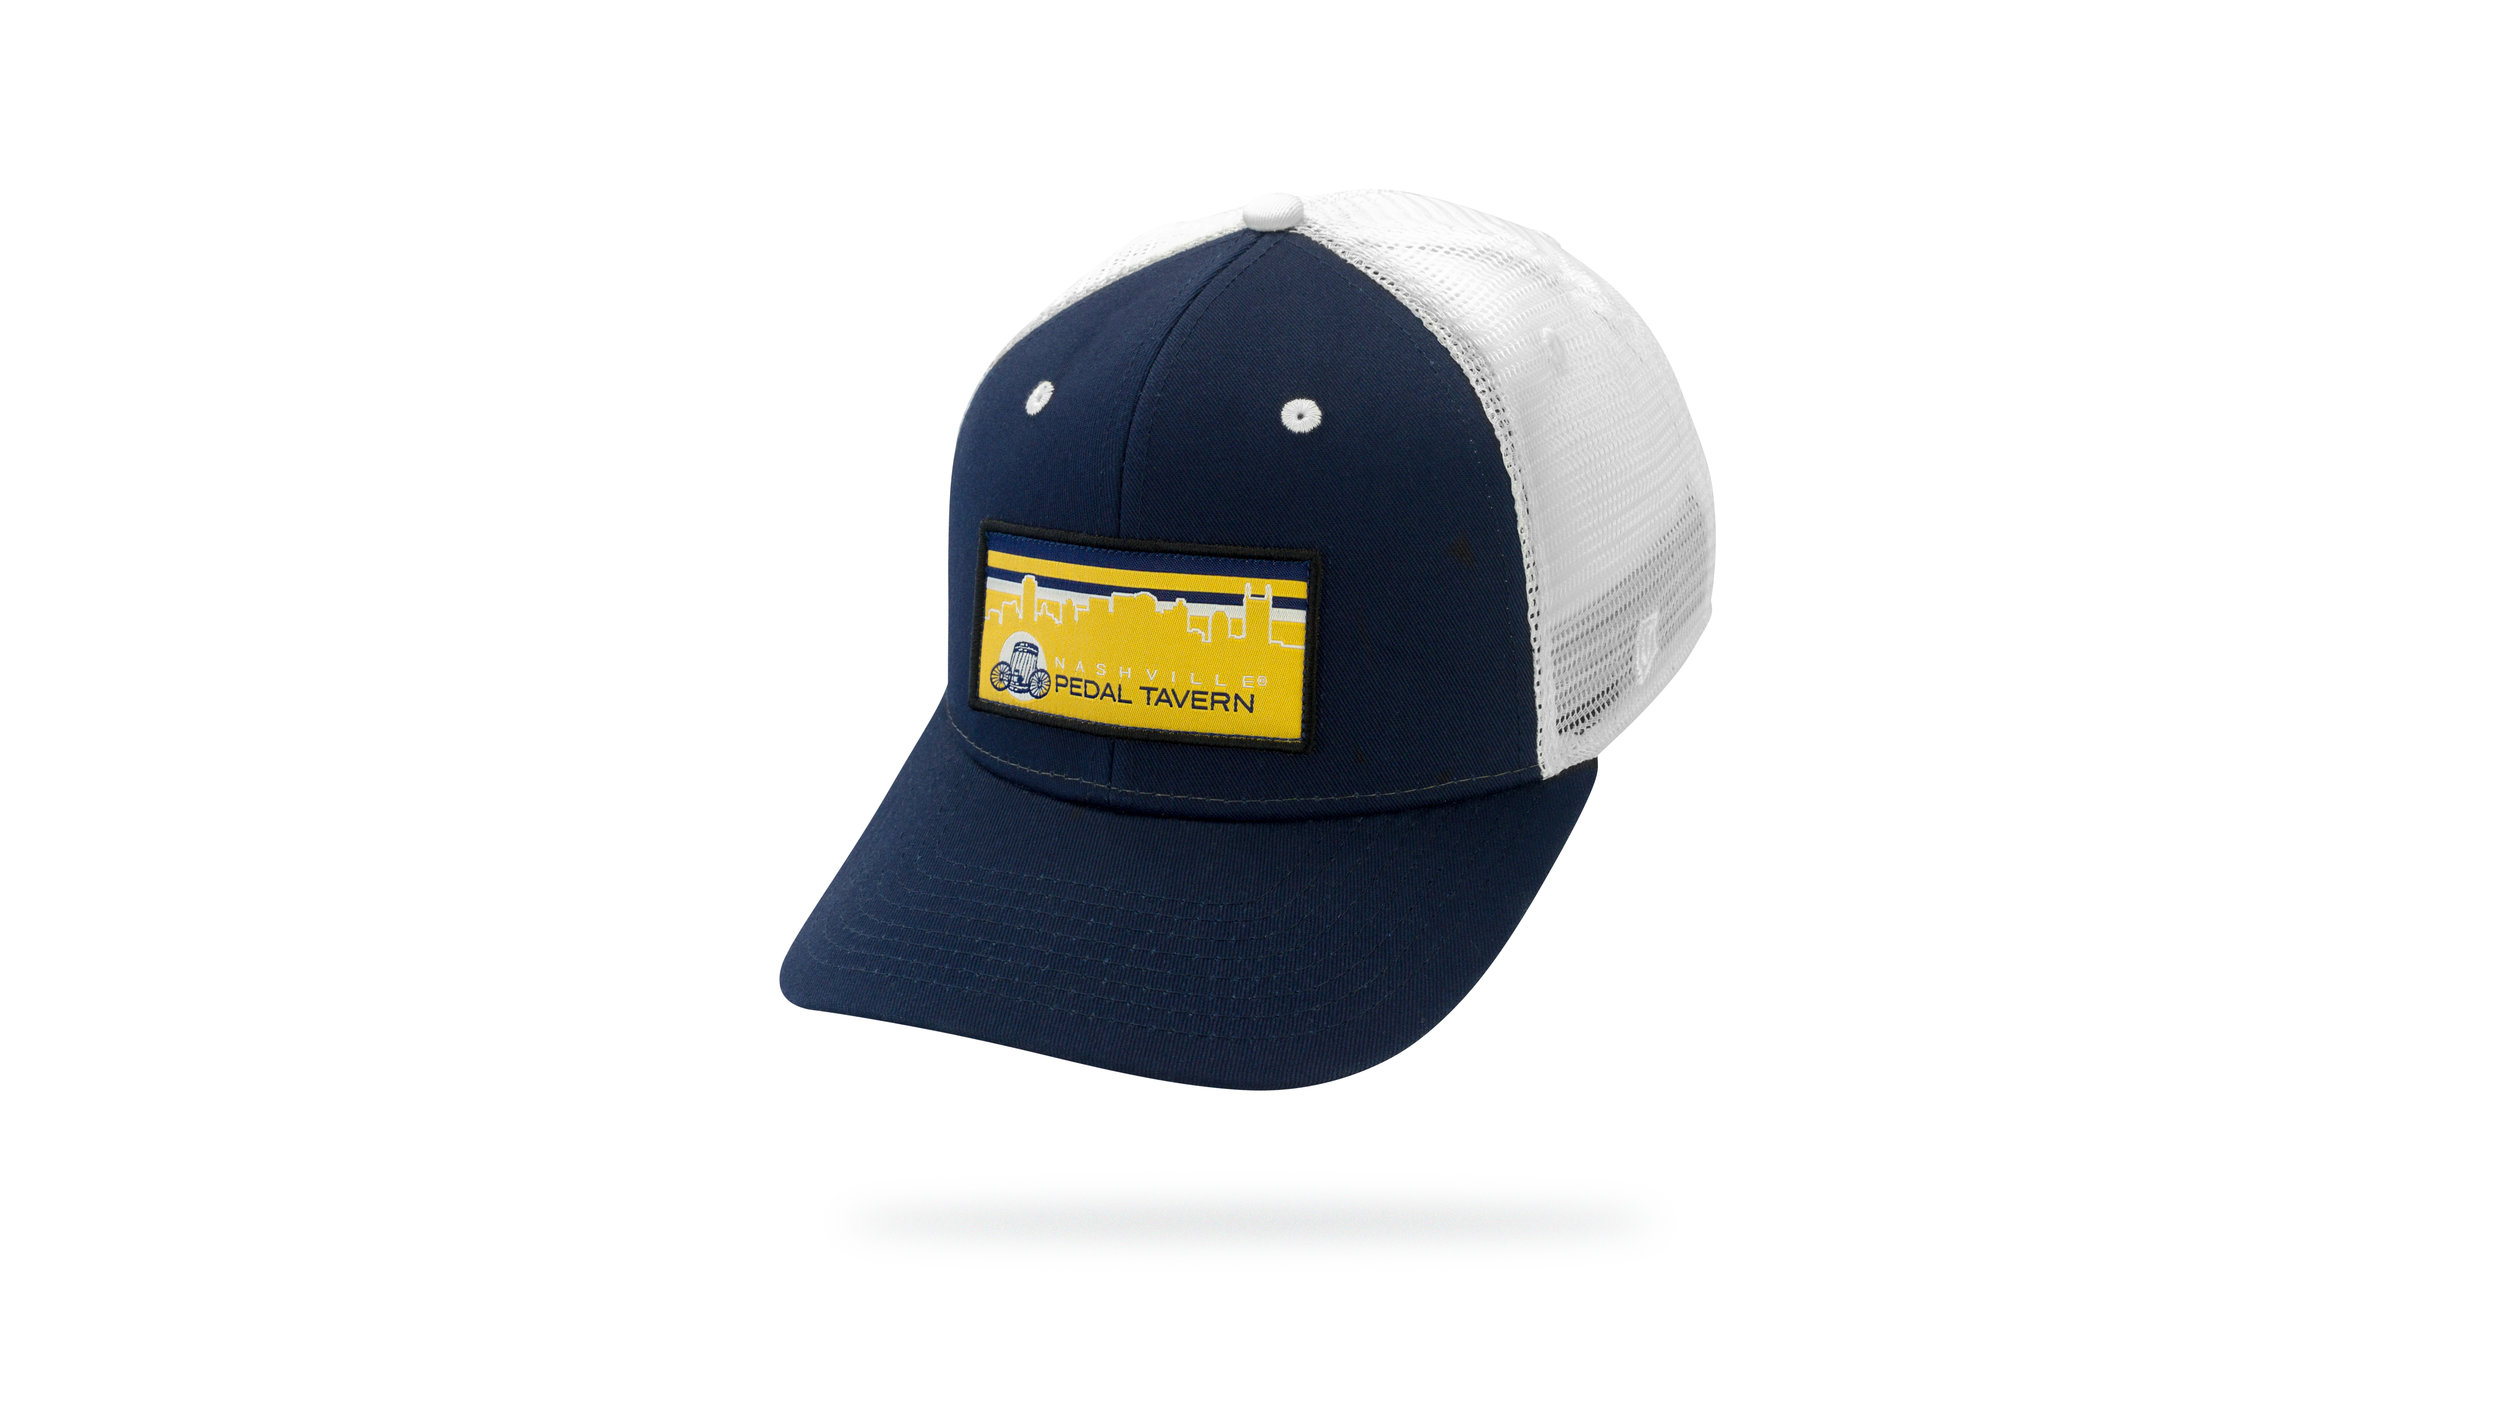 Featured Hat: Style IV - Vintage Trucker w/ Woven Label Patch